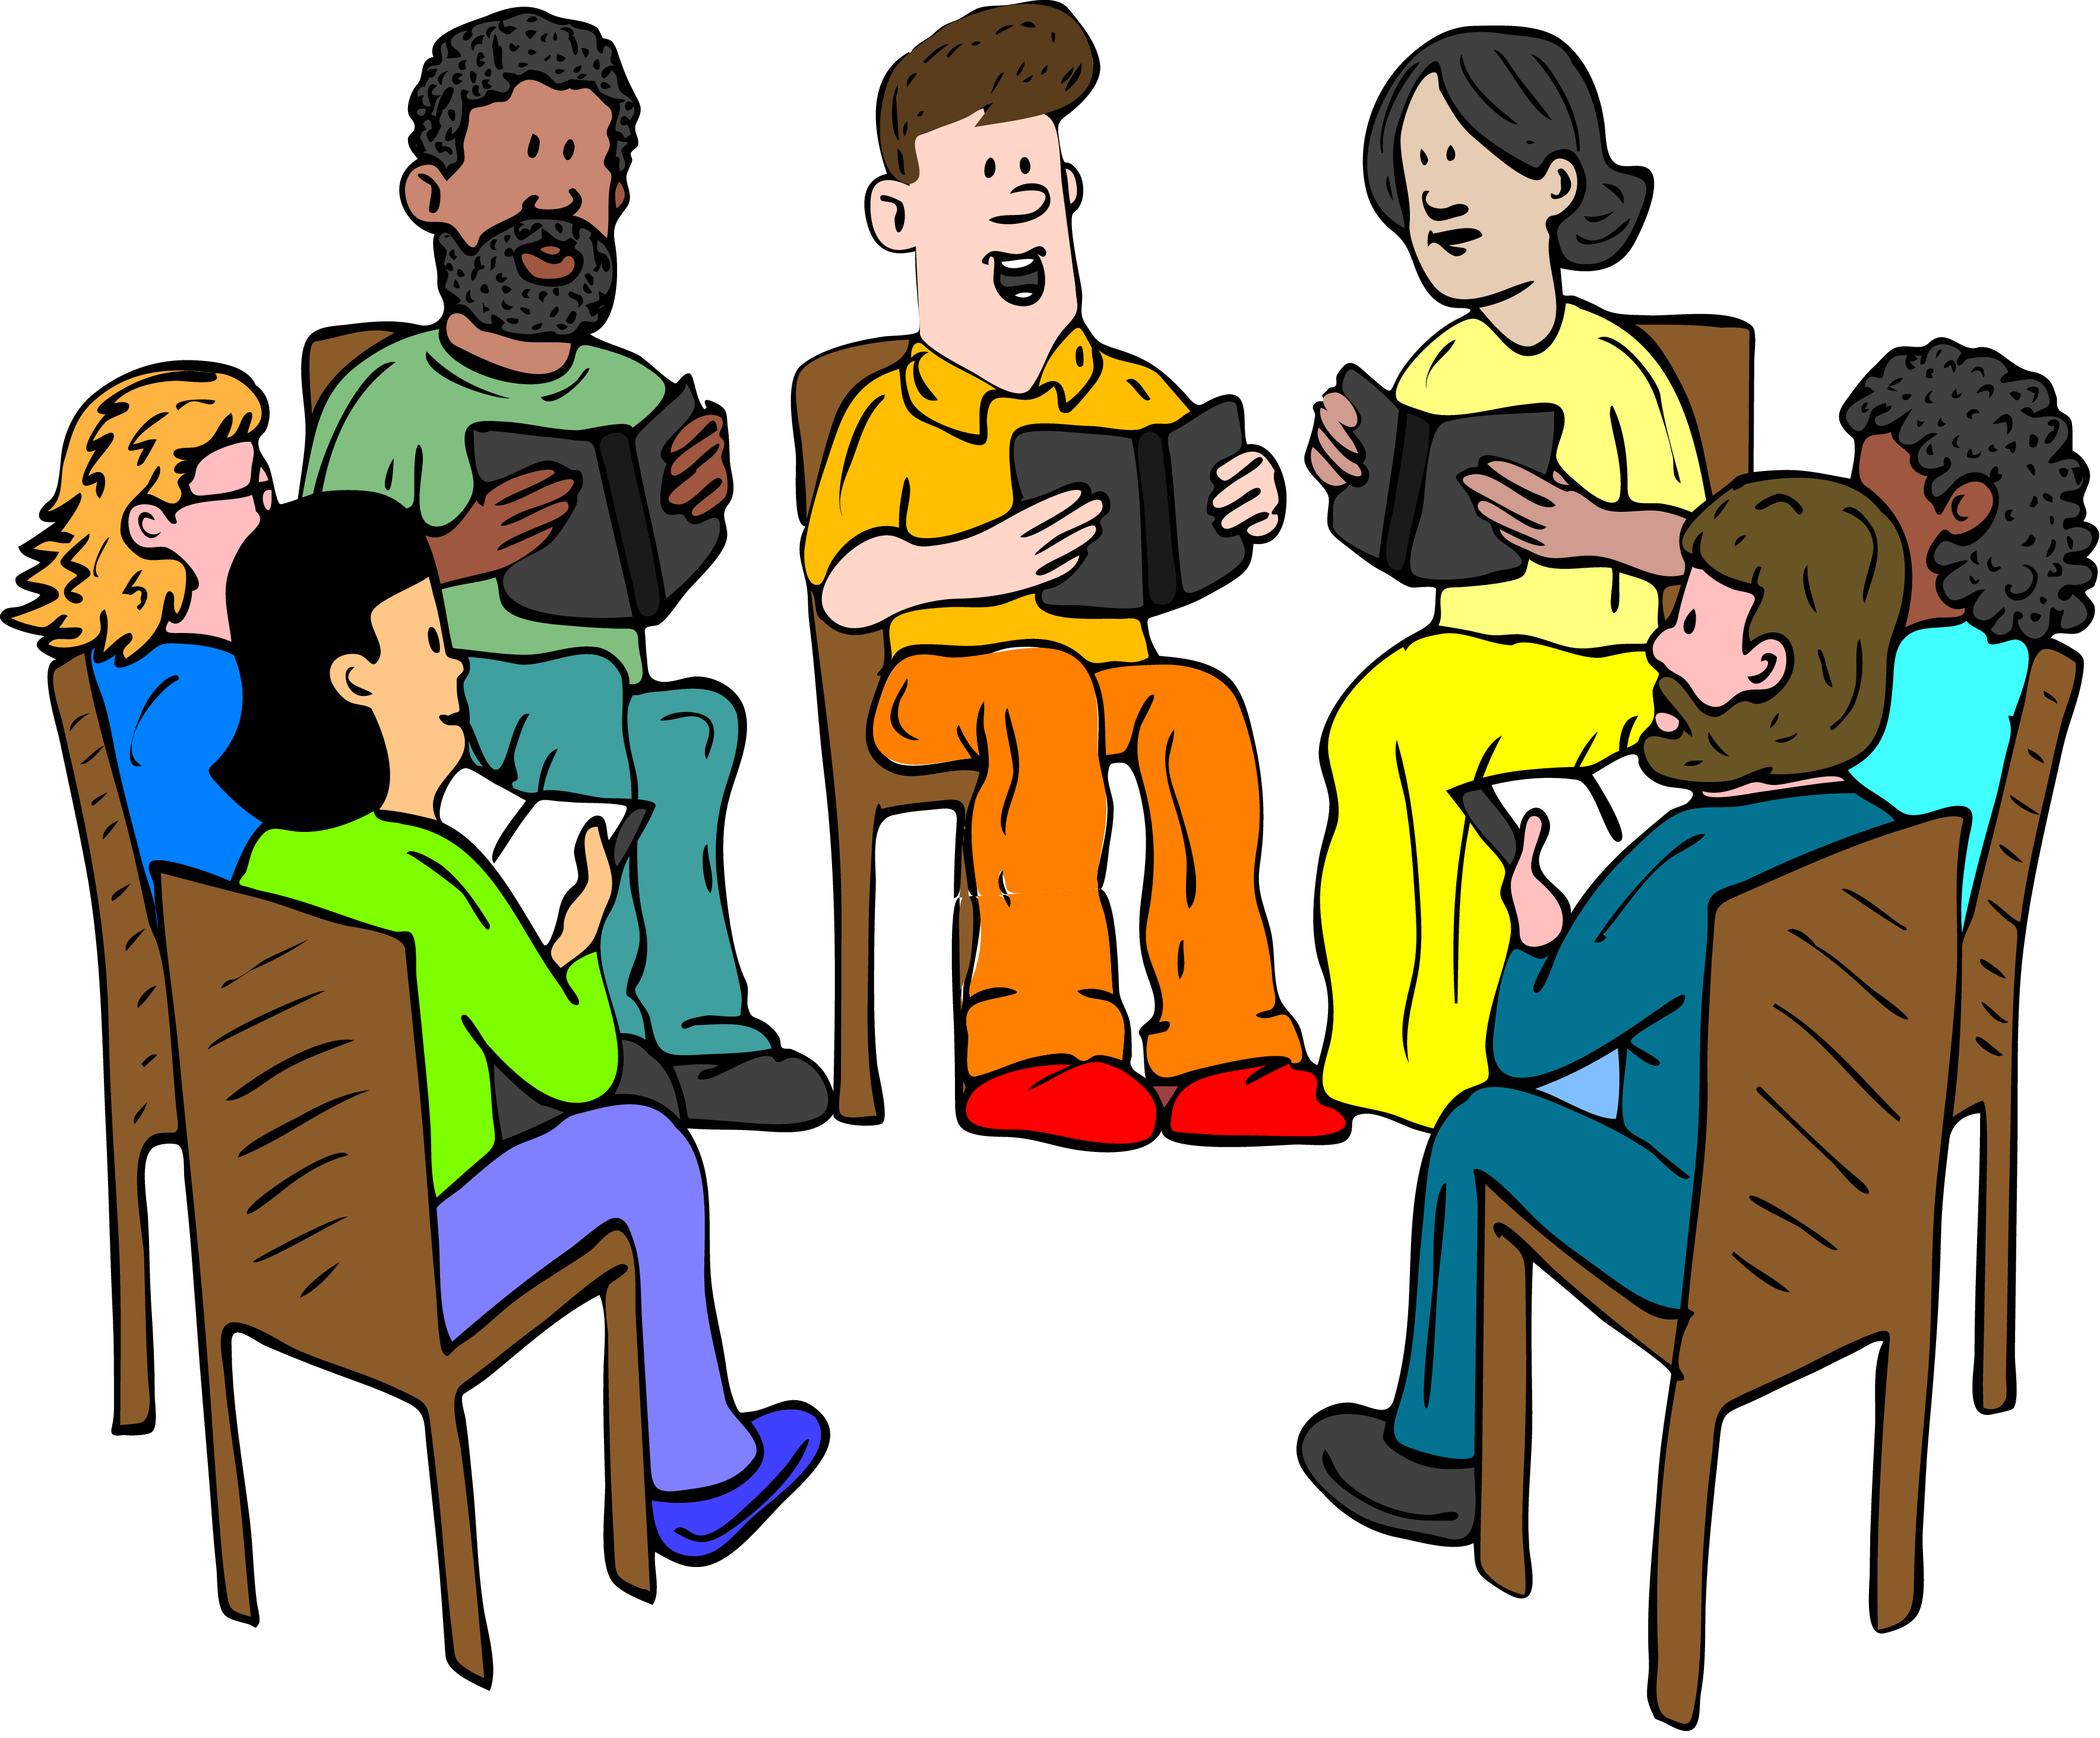 transparent library Club meeting free on. Library clipart reference book.